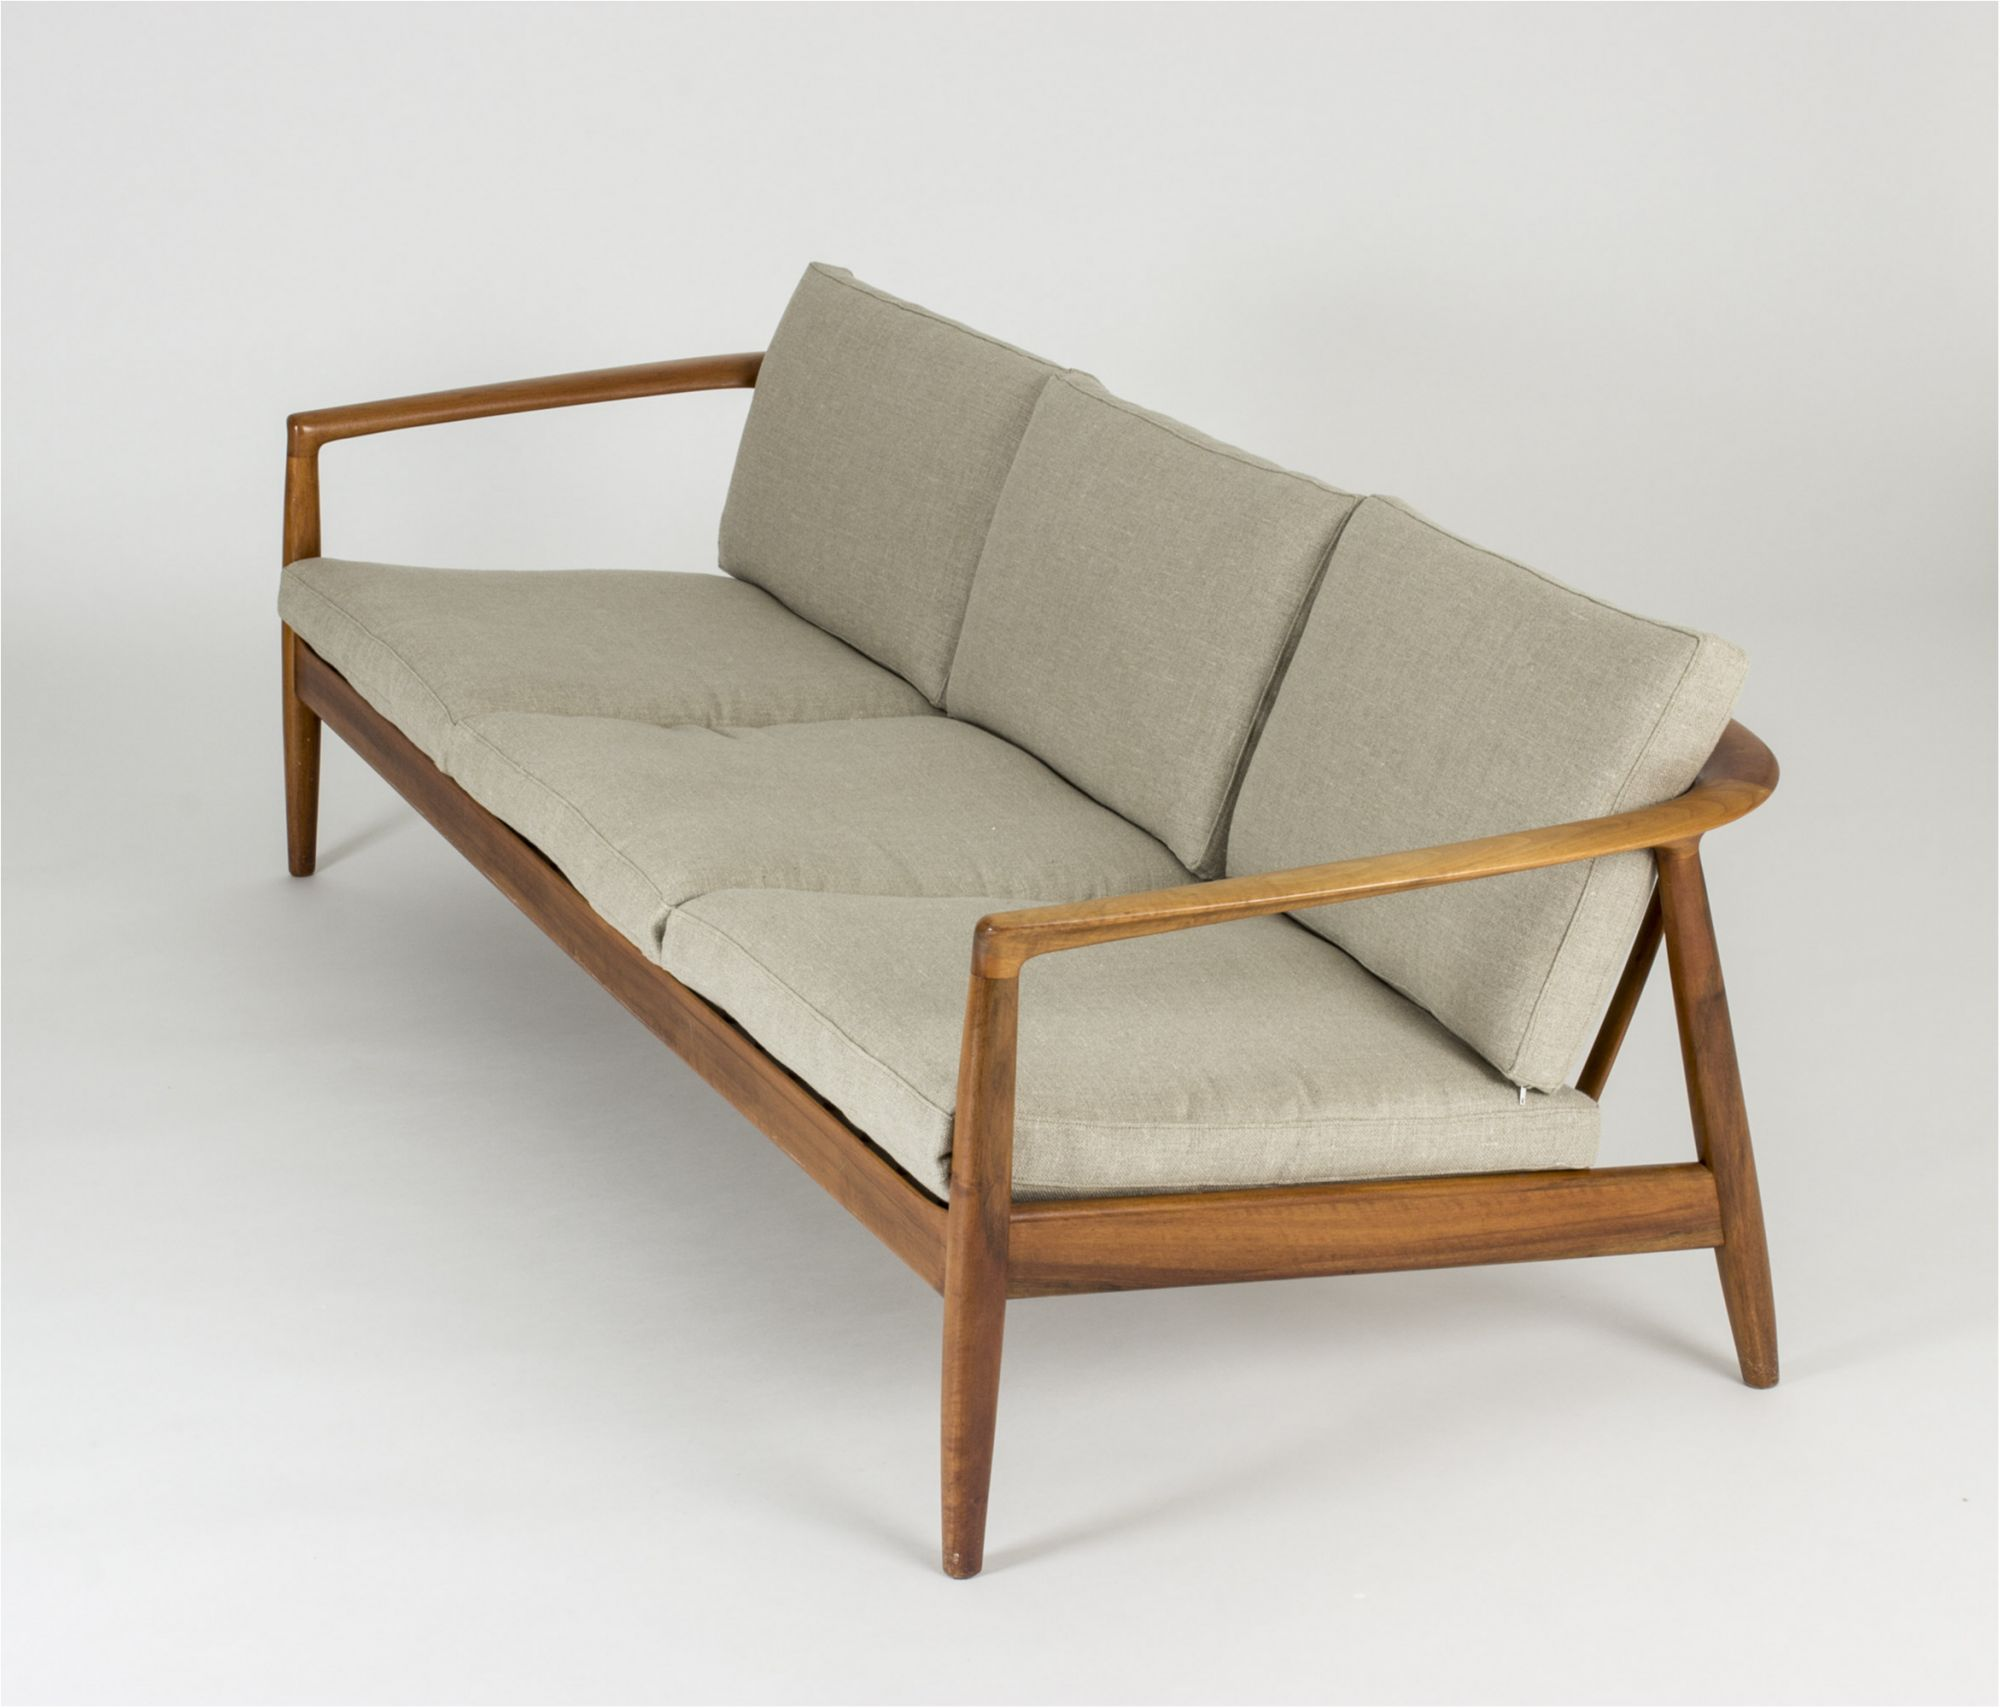 Walnut Sofa By Folke Ohlsson